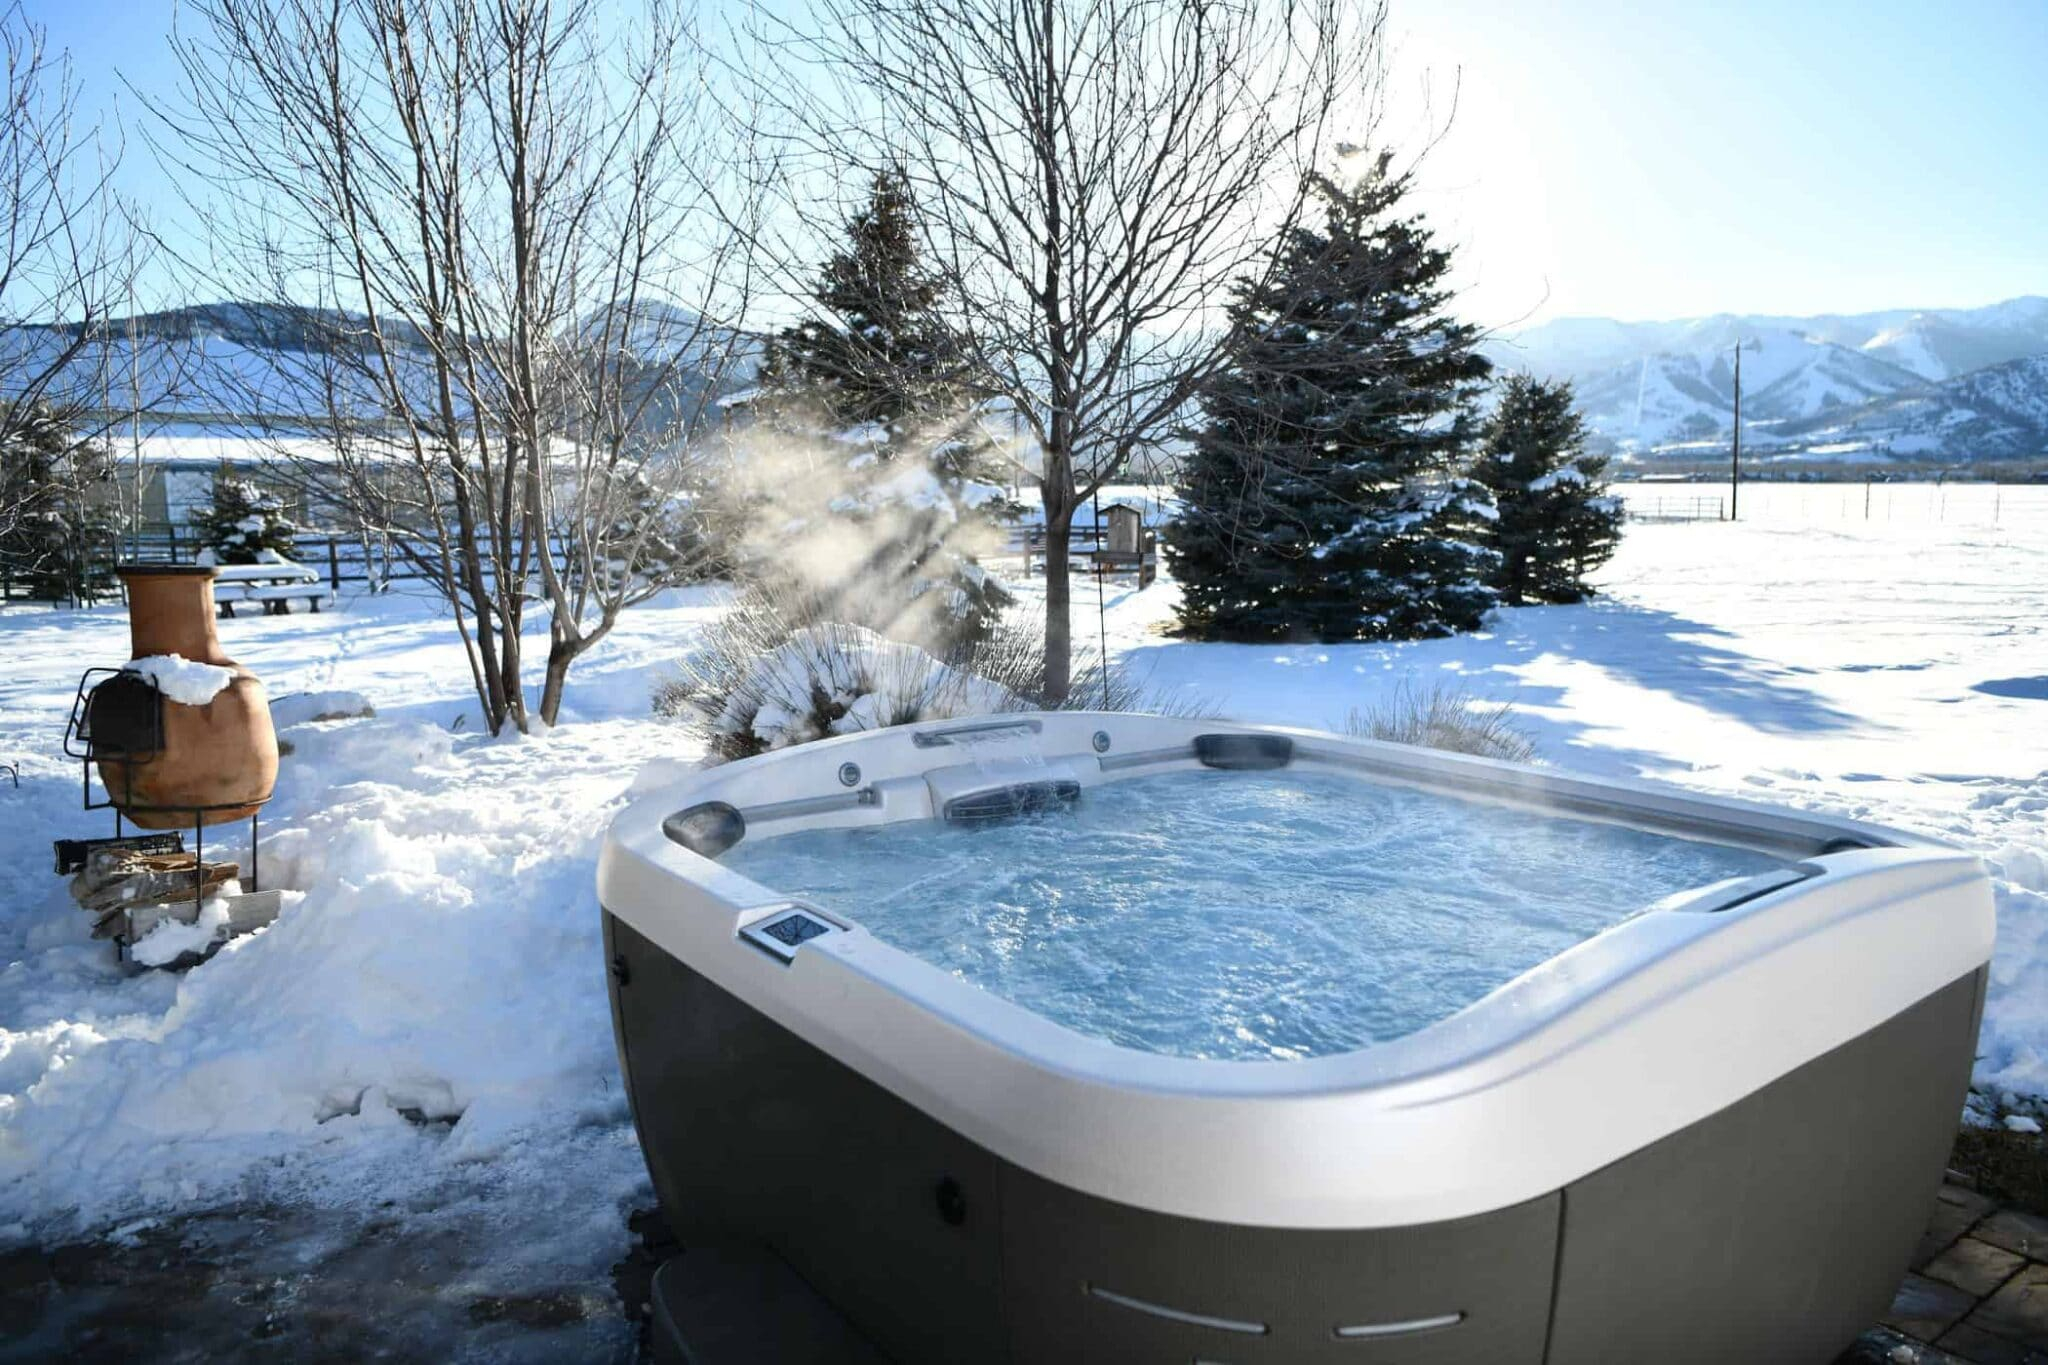 J-500 series hot tub in the winter